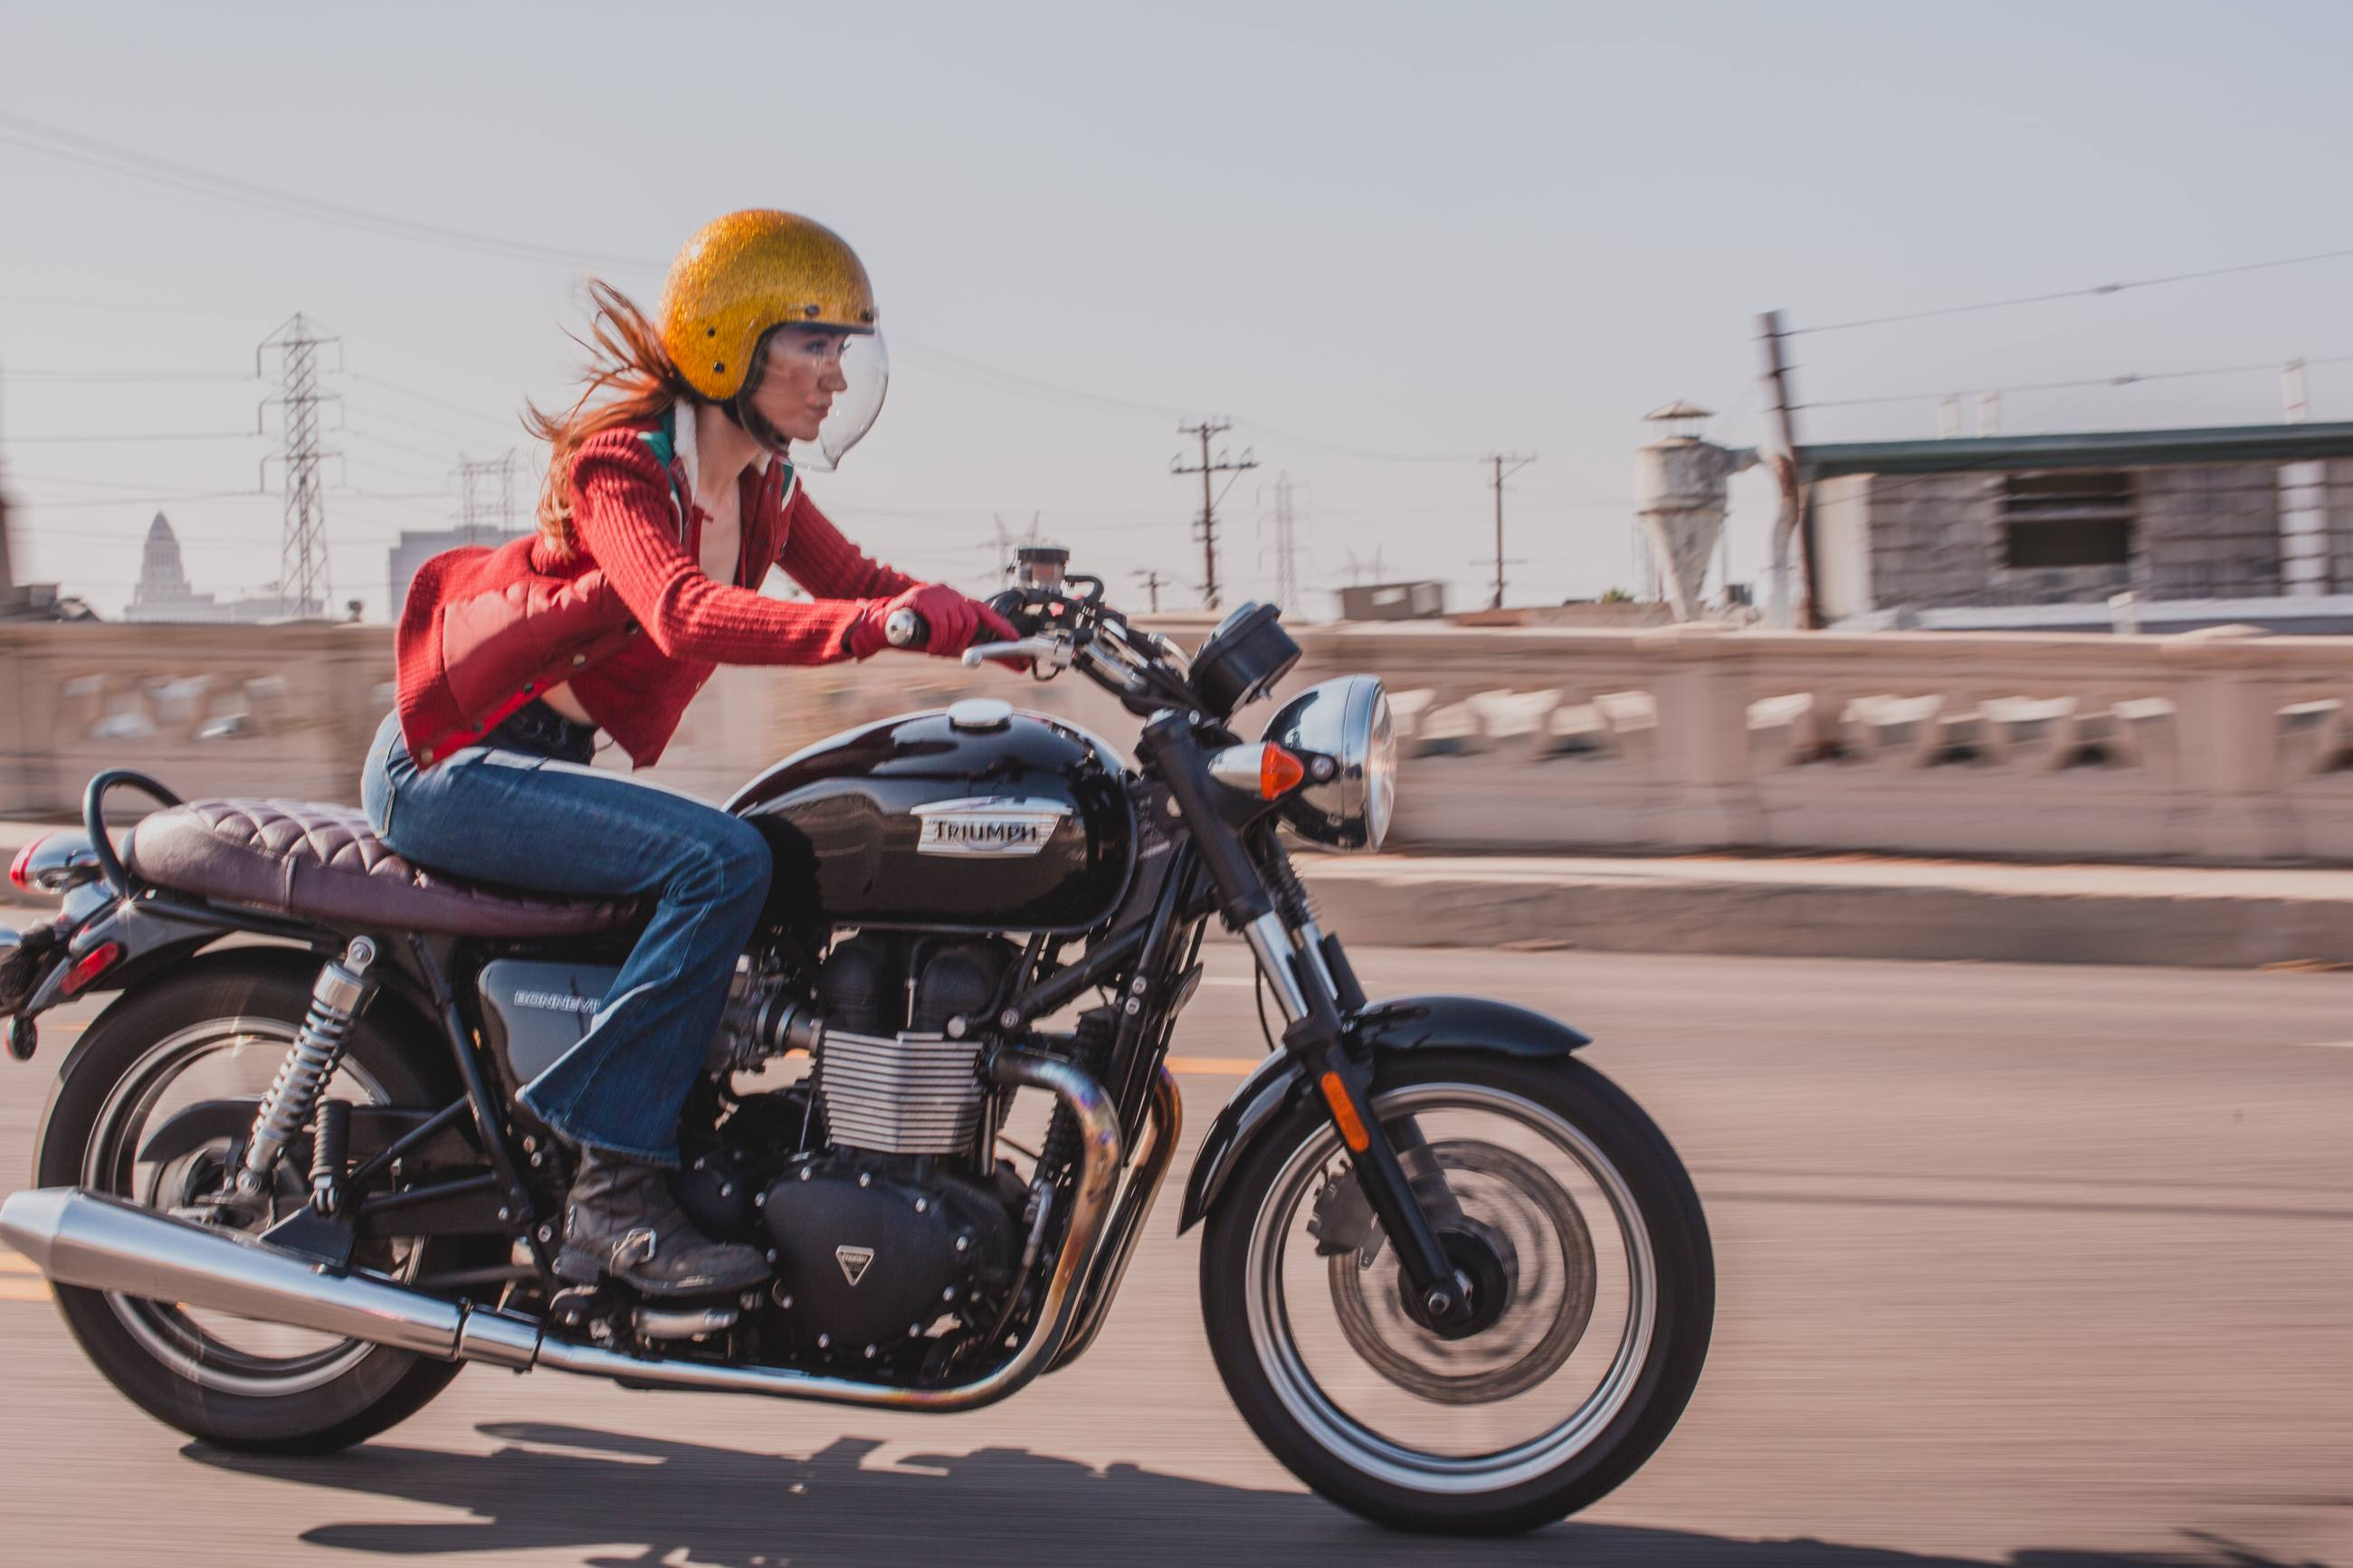 Motorcycle expert Irena Murphy crosses a bridge in Downtown L.A.